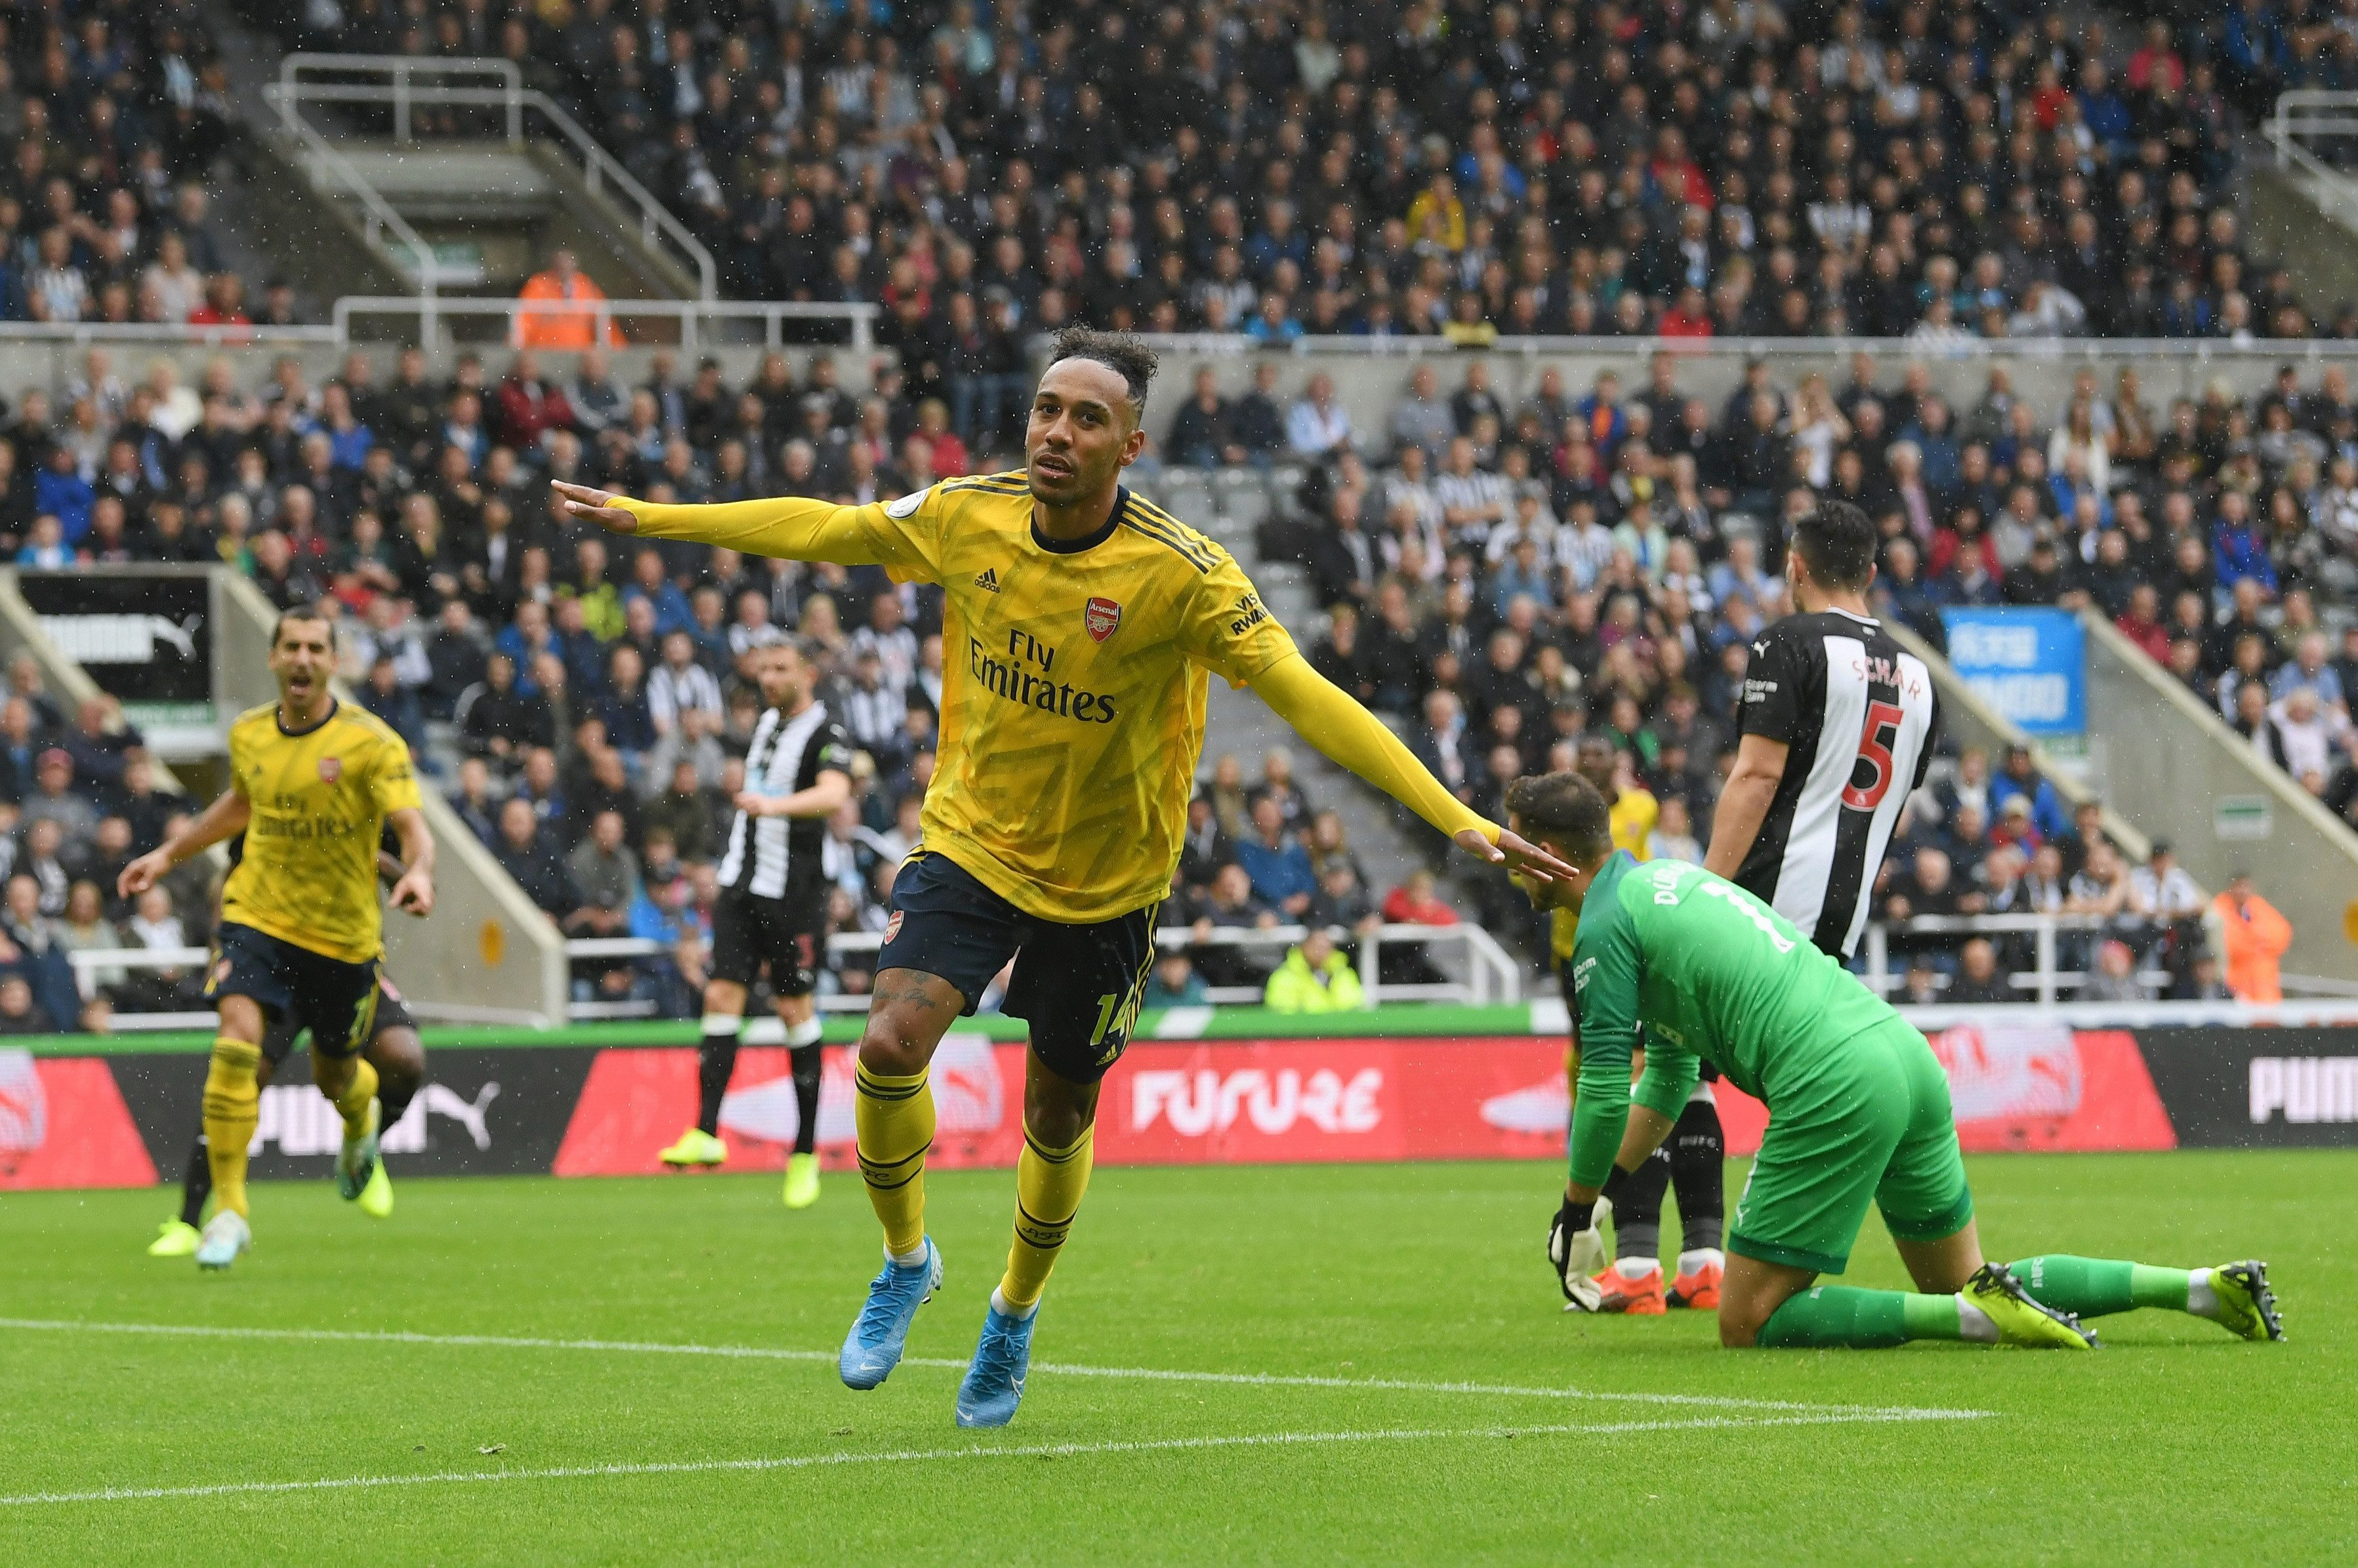 Pierre-Emerick Aubameyang scored the winning goal for Arsenal at Newcastle last weekend